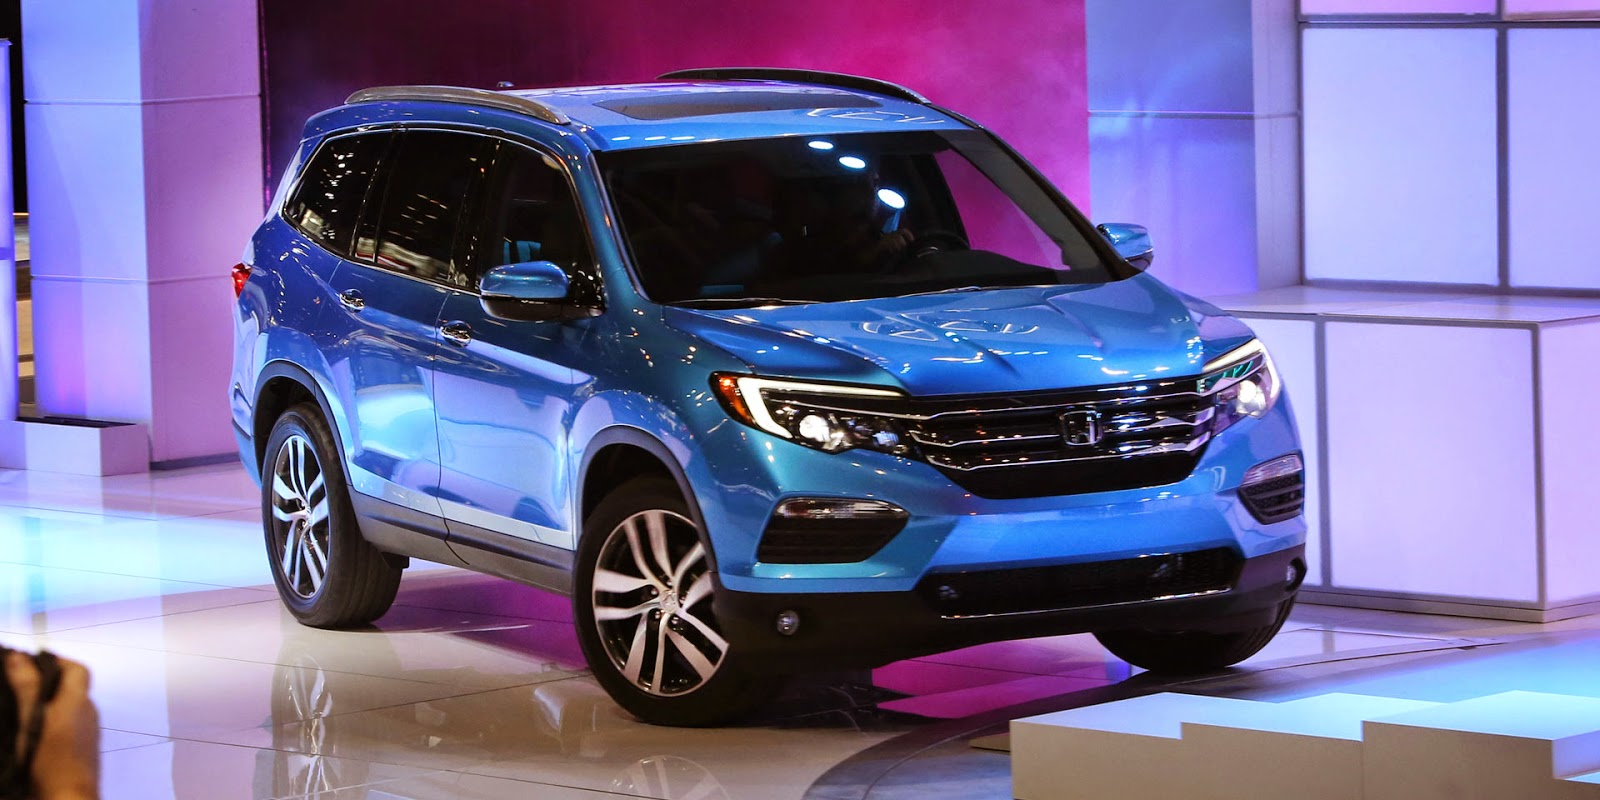 The 2016 Honda Pilot Is Completely Redesigned From Top To Bottom, With A  New, Sleeker Look And A Revised Powertrain For Better Fuel Economy And  Power.